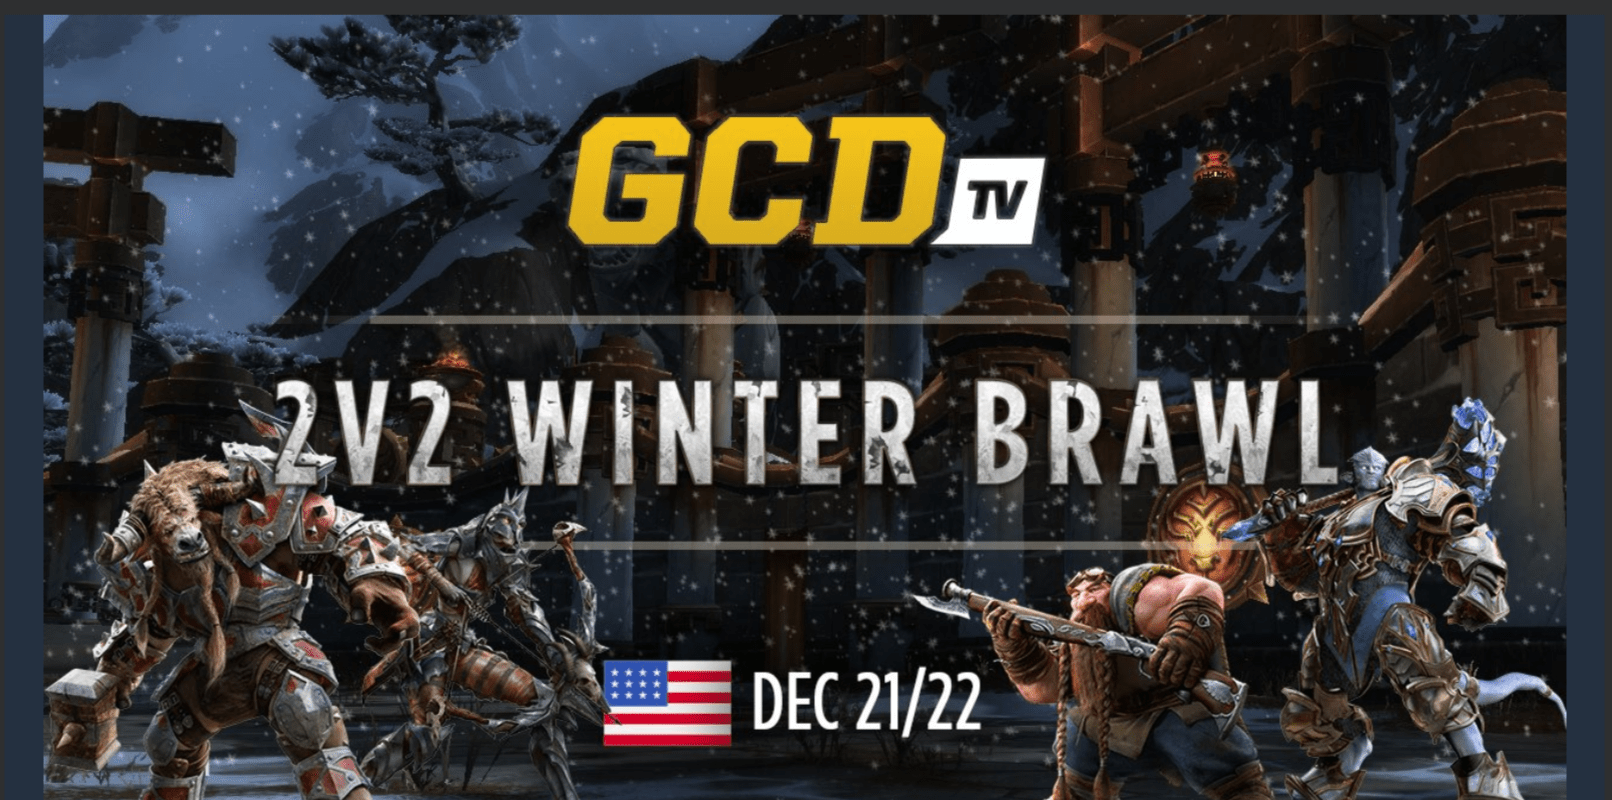 World Of Warcraft Arena Duos Get Ready, New Tournament GCDTV 2v2 Winter Brawl Has Been Announced